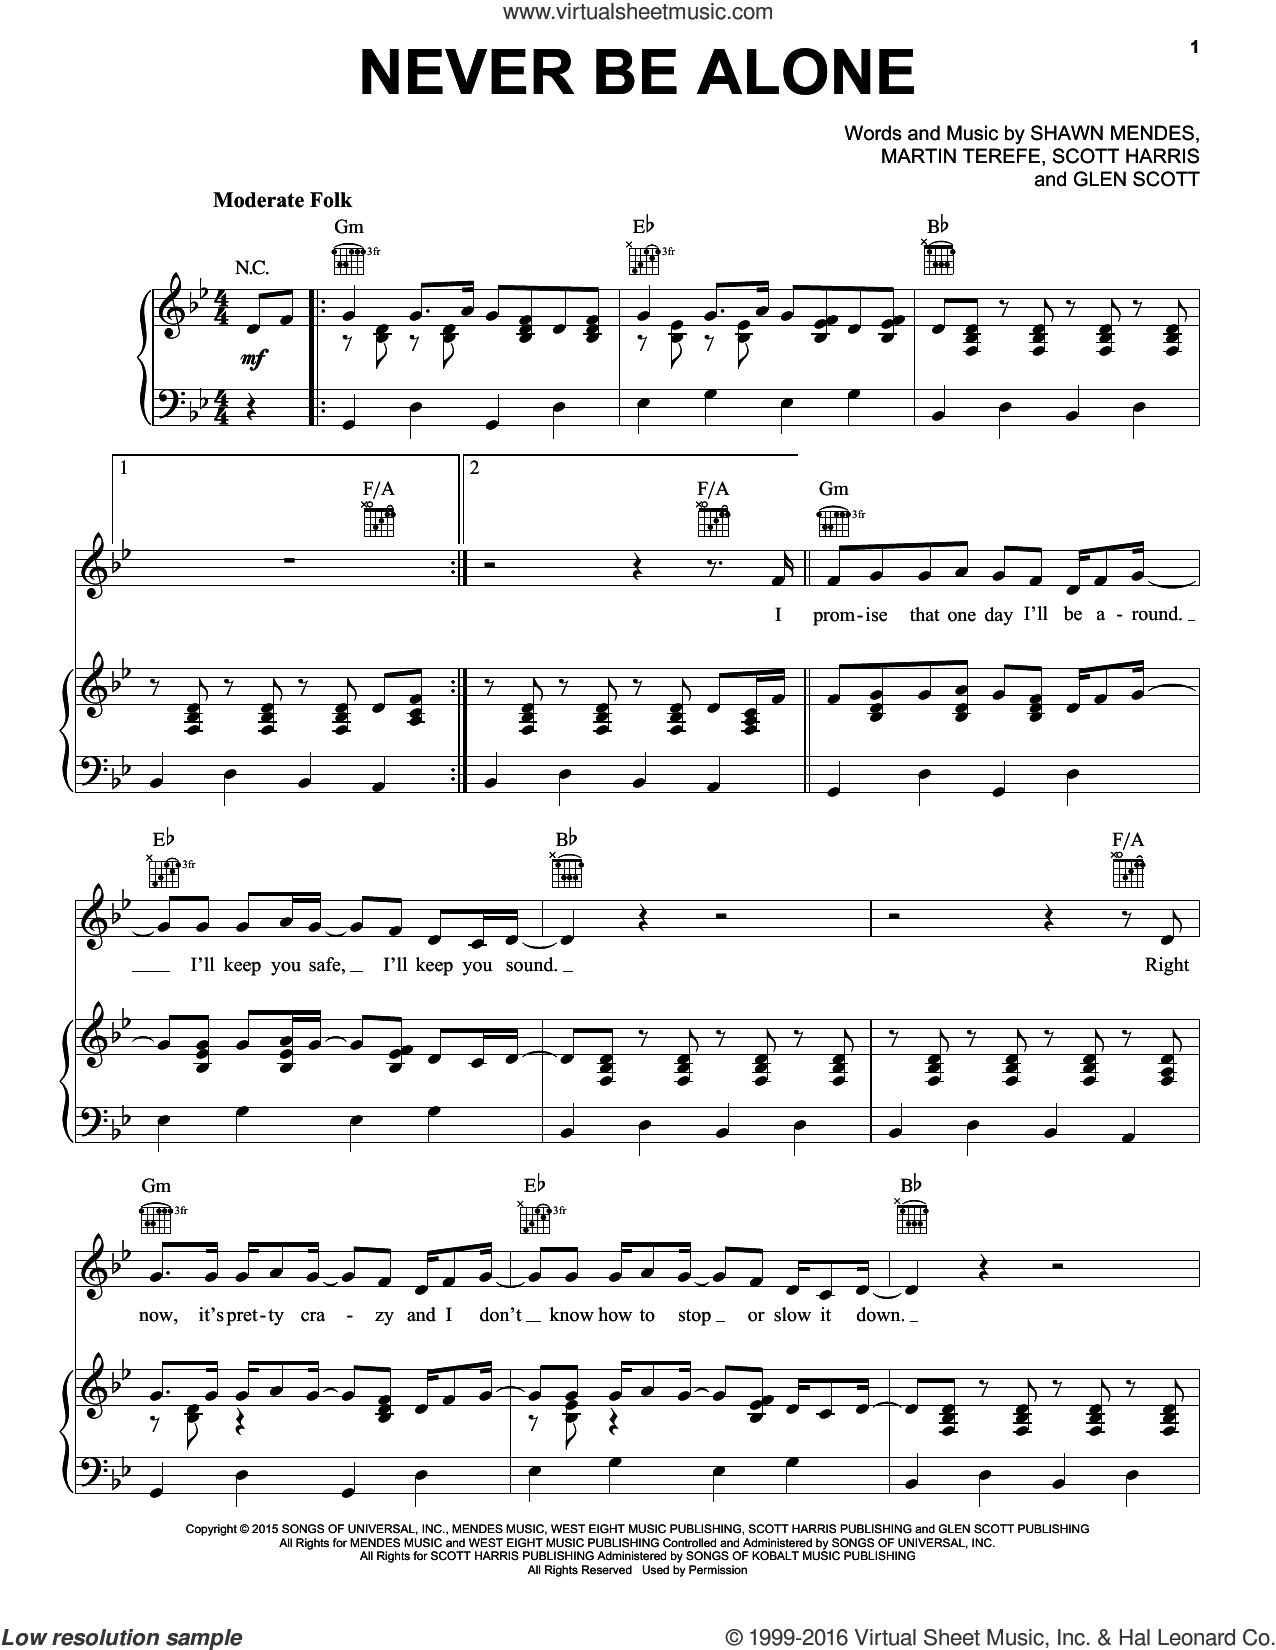 Never Be Alone sheet music for voice, piano or guitar by Shawn Mendes, Glen Scott, Martin Terefe and Scott Harris, intermediate skill level